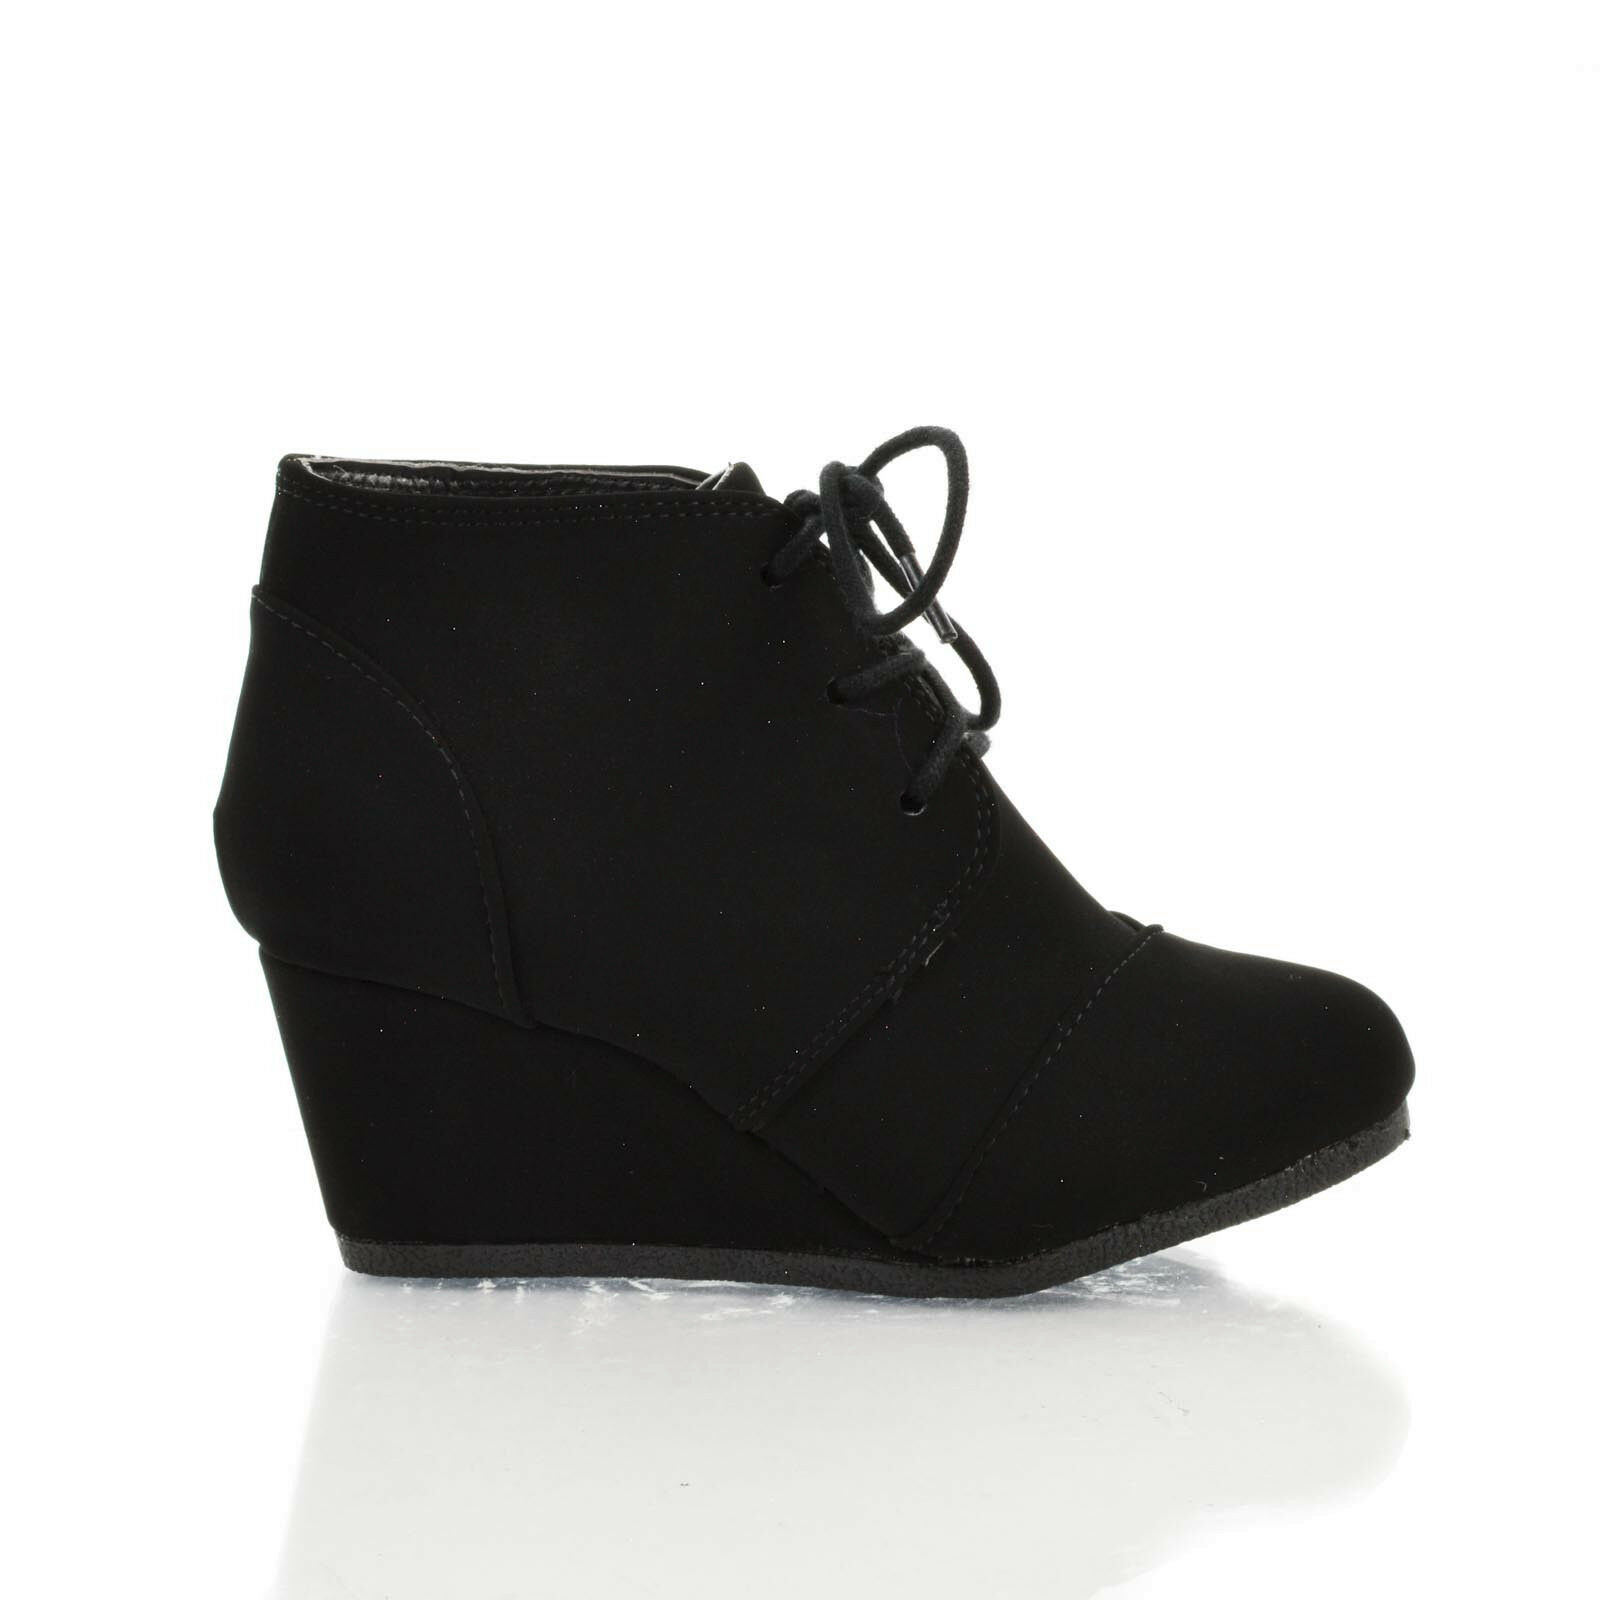 Wedge Heel Shoes Online